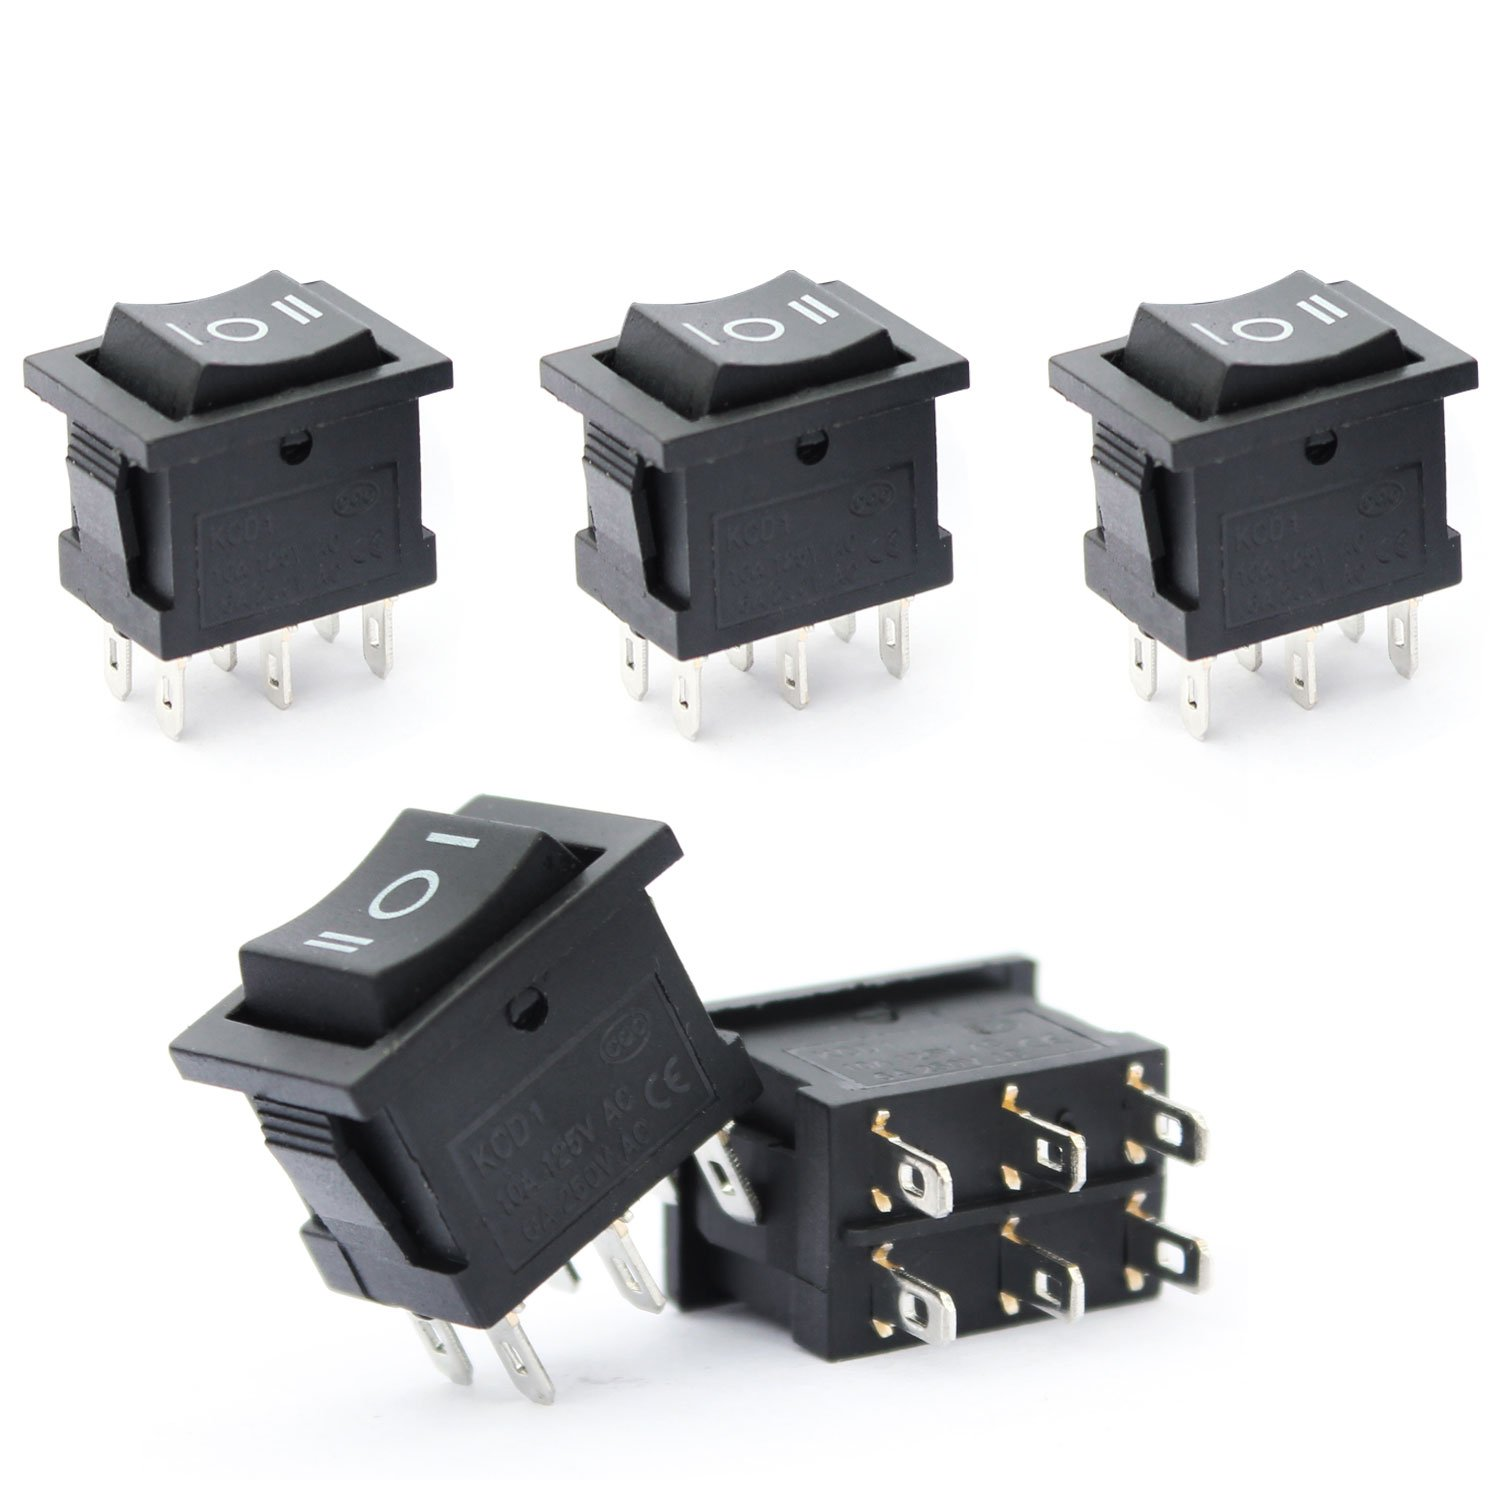 Ytian 5pcs Boat Rocker Switch ON OFF ON for Car Auto Boat Household Appliances 3 Posición 6 Pins: Amazon.es: Electrónica